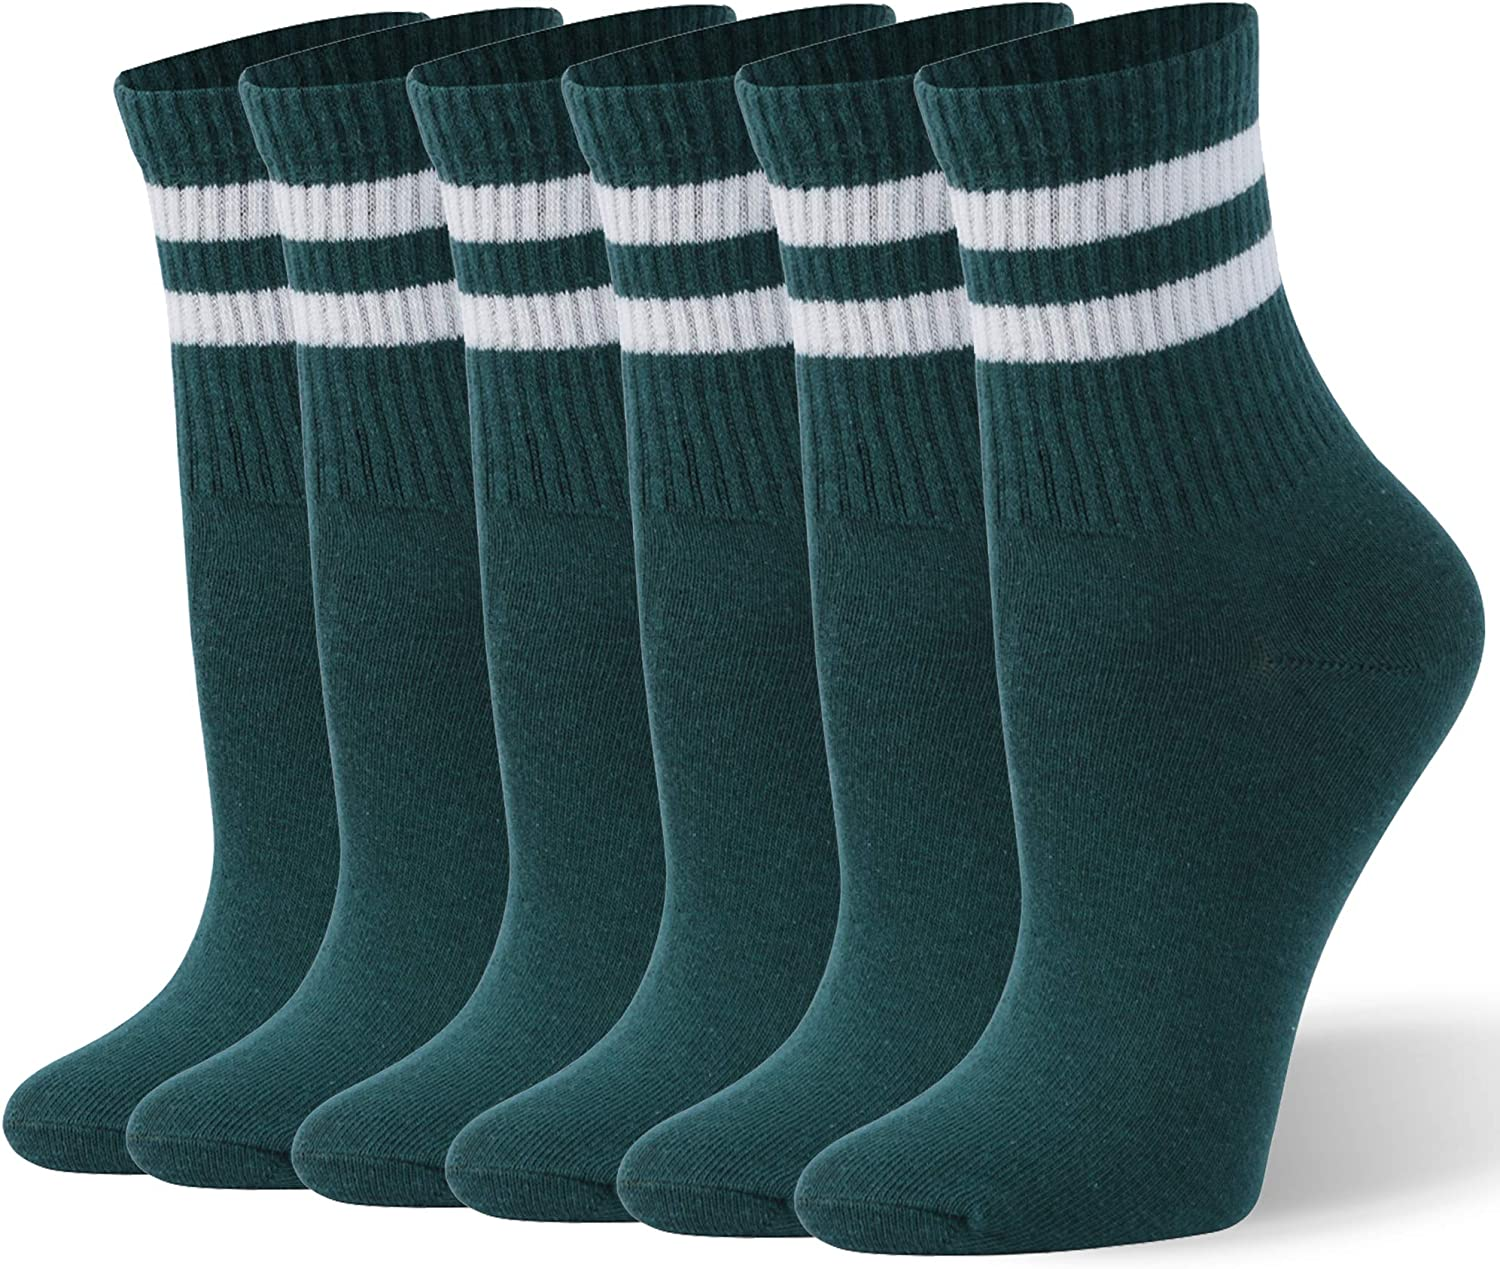 WXXM Casual Cotton Athletic Socks For Men /& Women Thin Breathable Running Socks Multicolor 3//6 pack